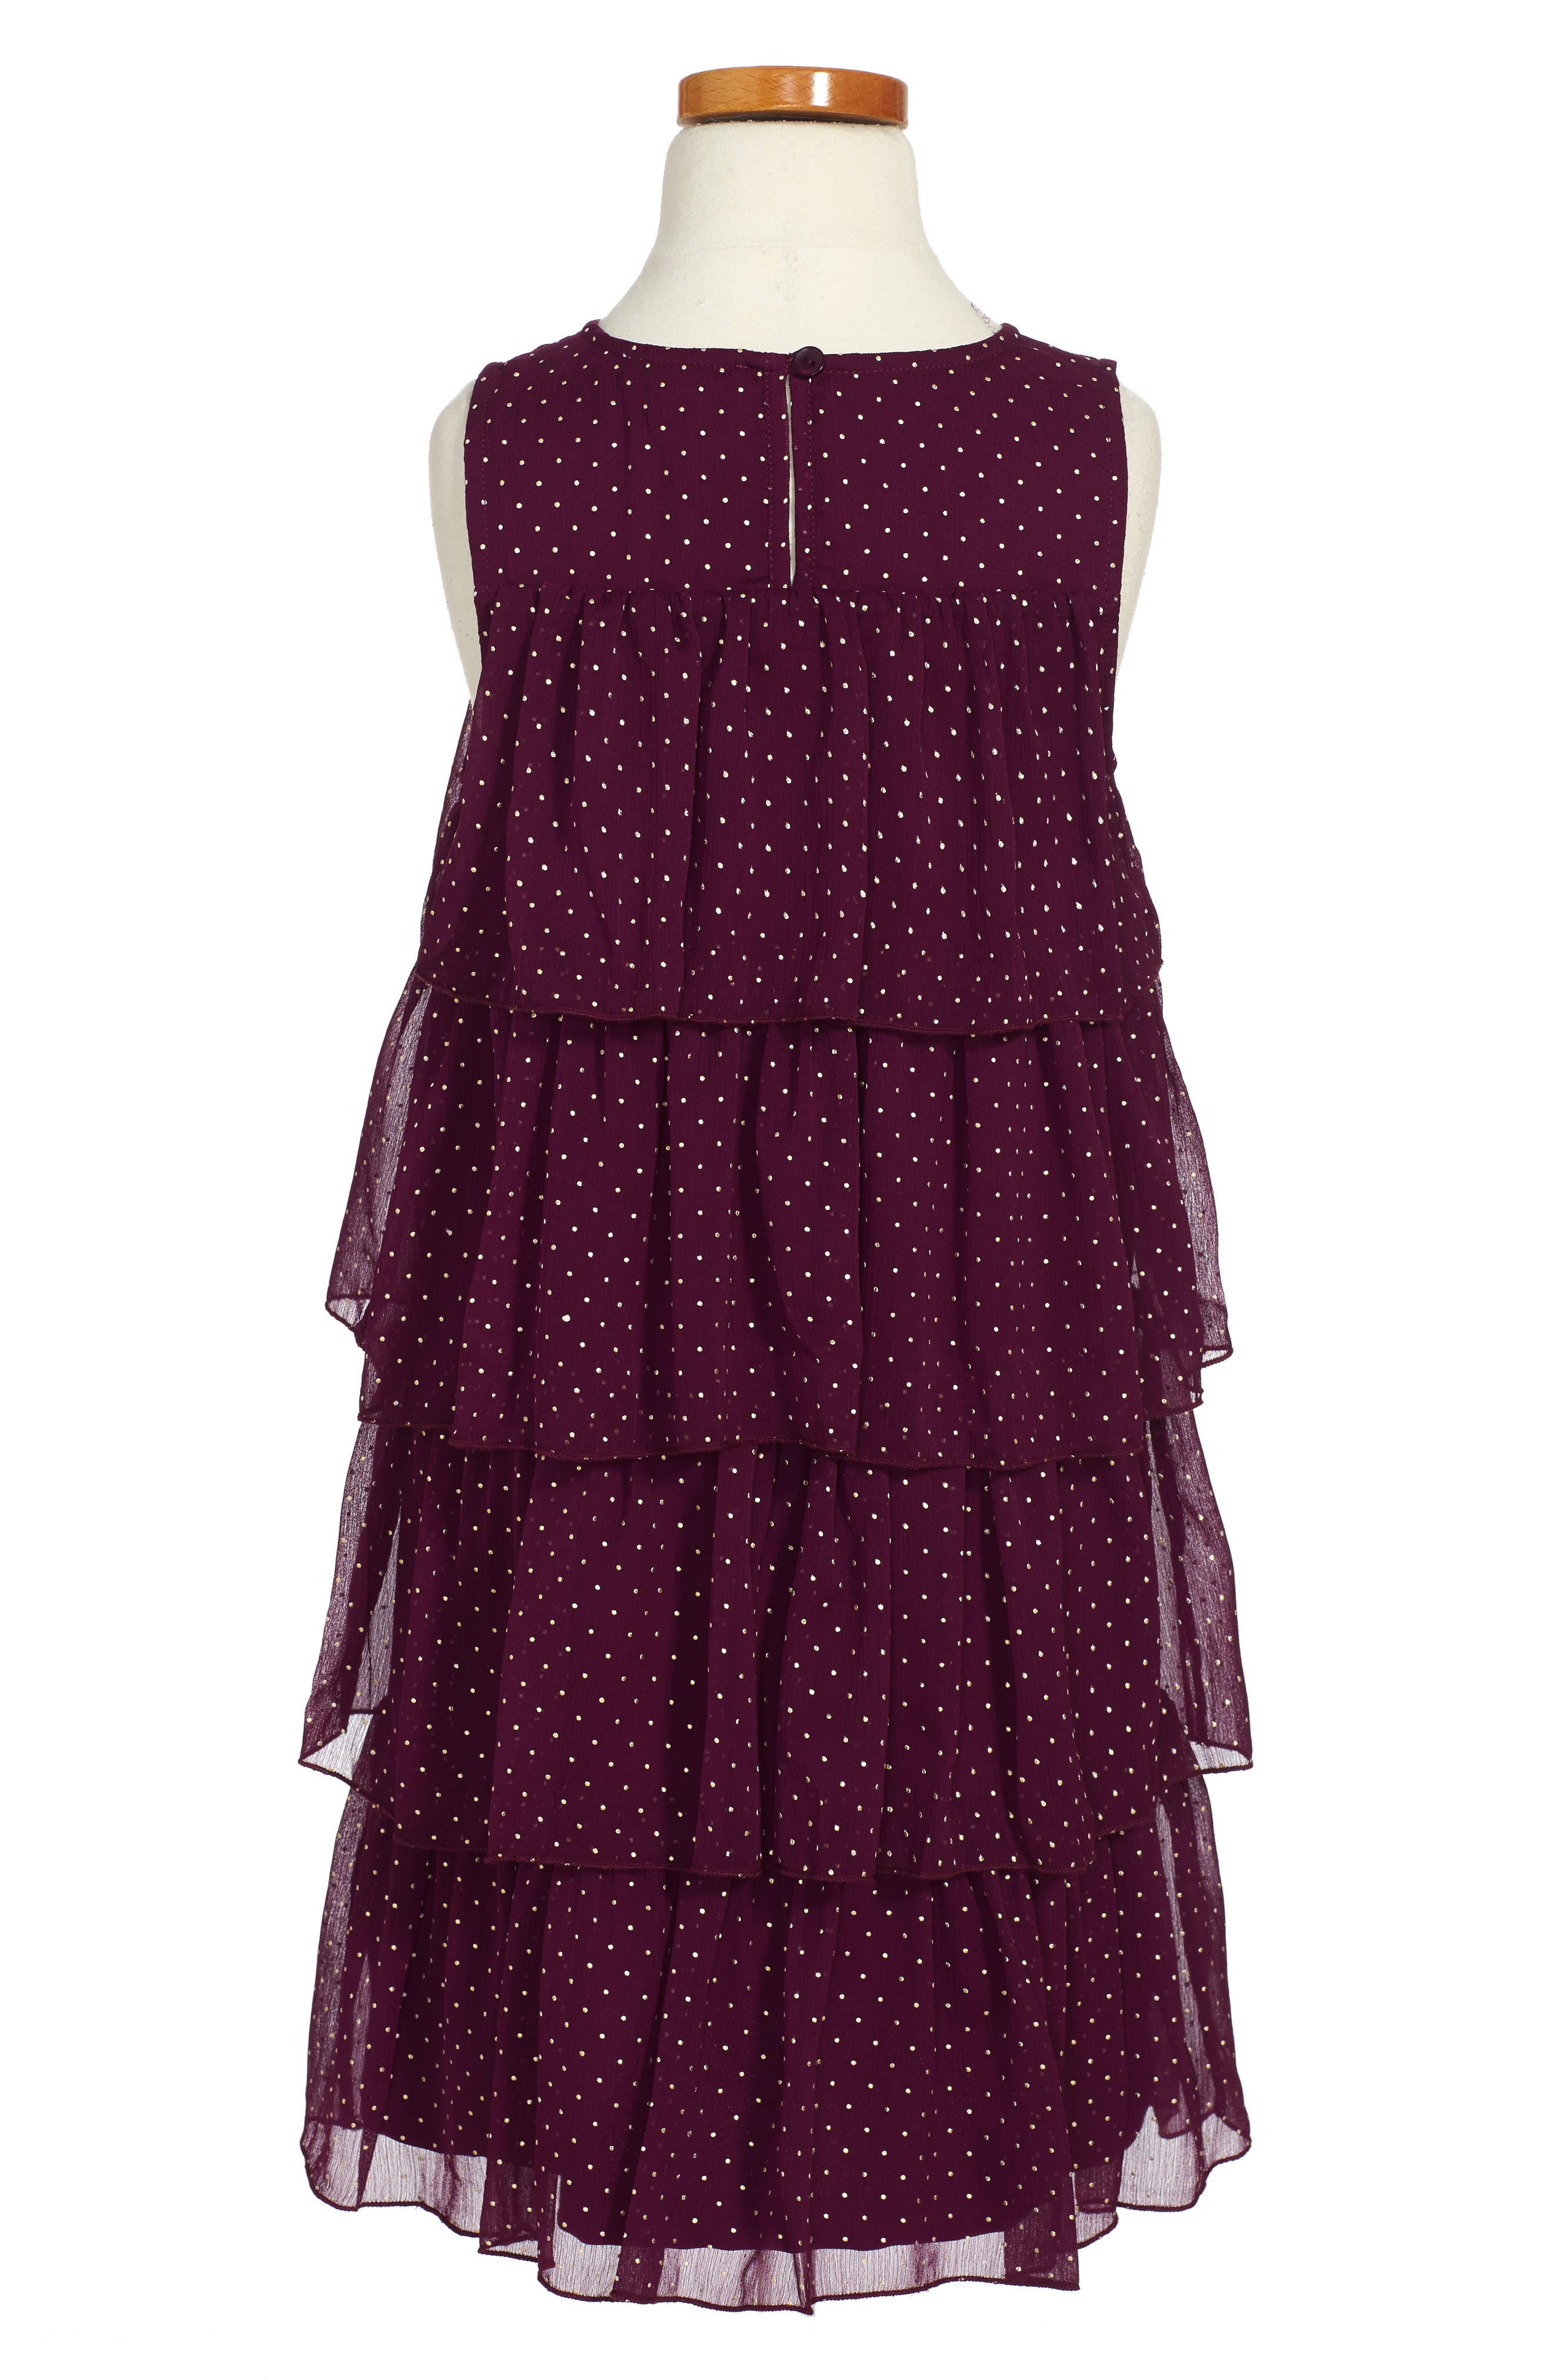 Tiered Dot Dress,                             Alternate thumbnail 2, color,                             Purple Dark